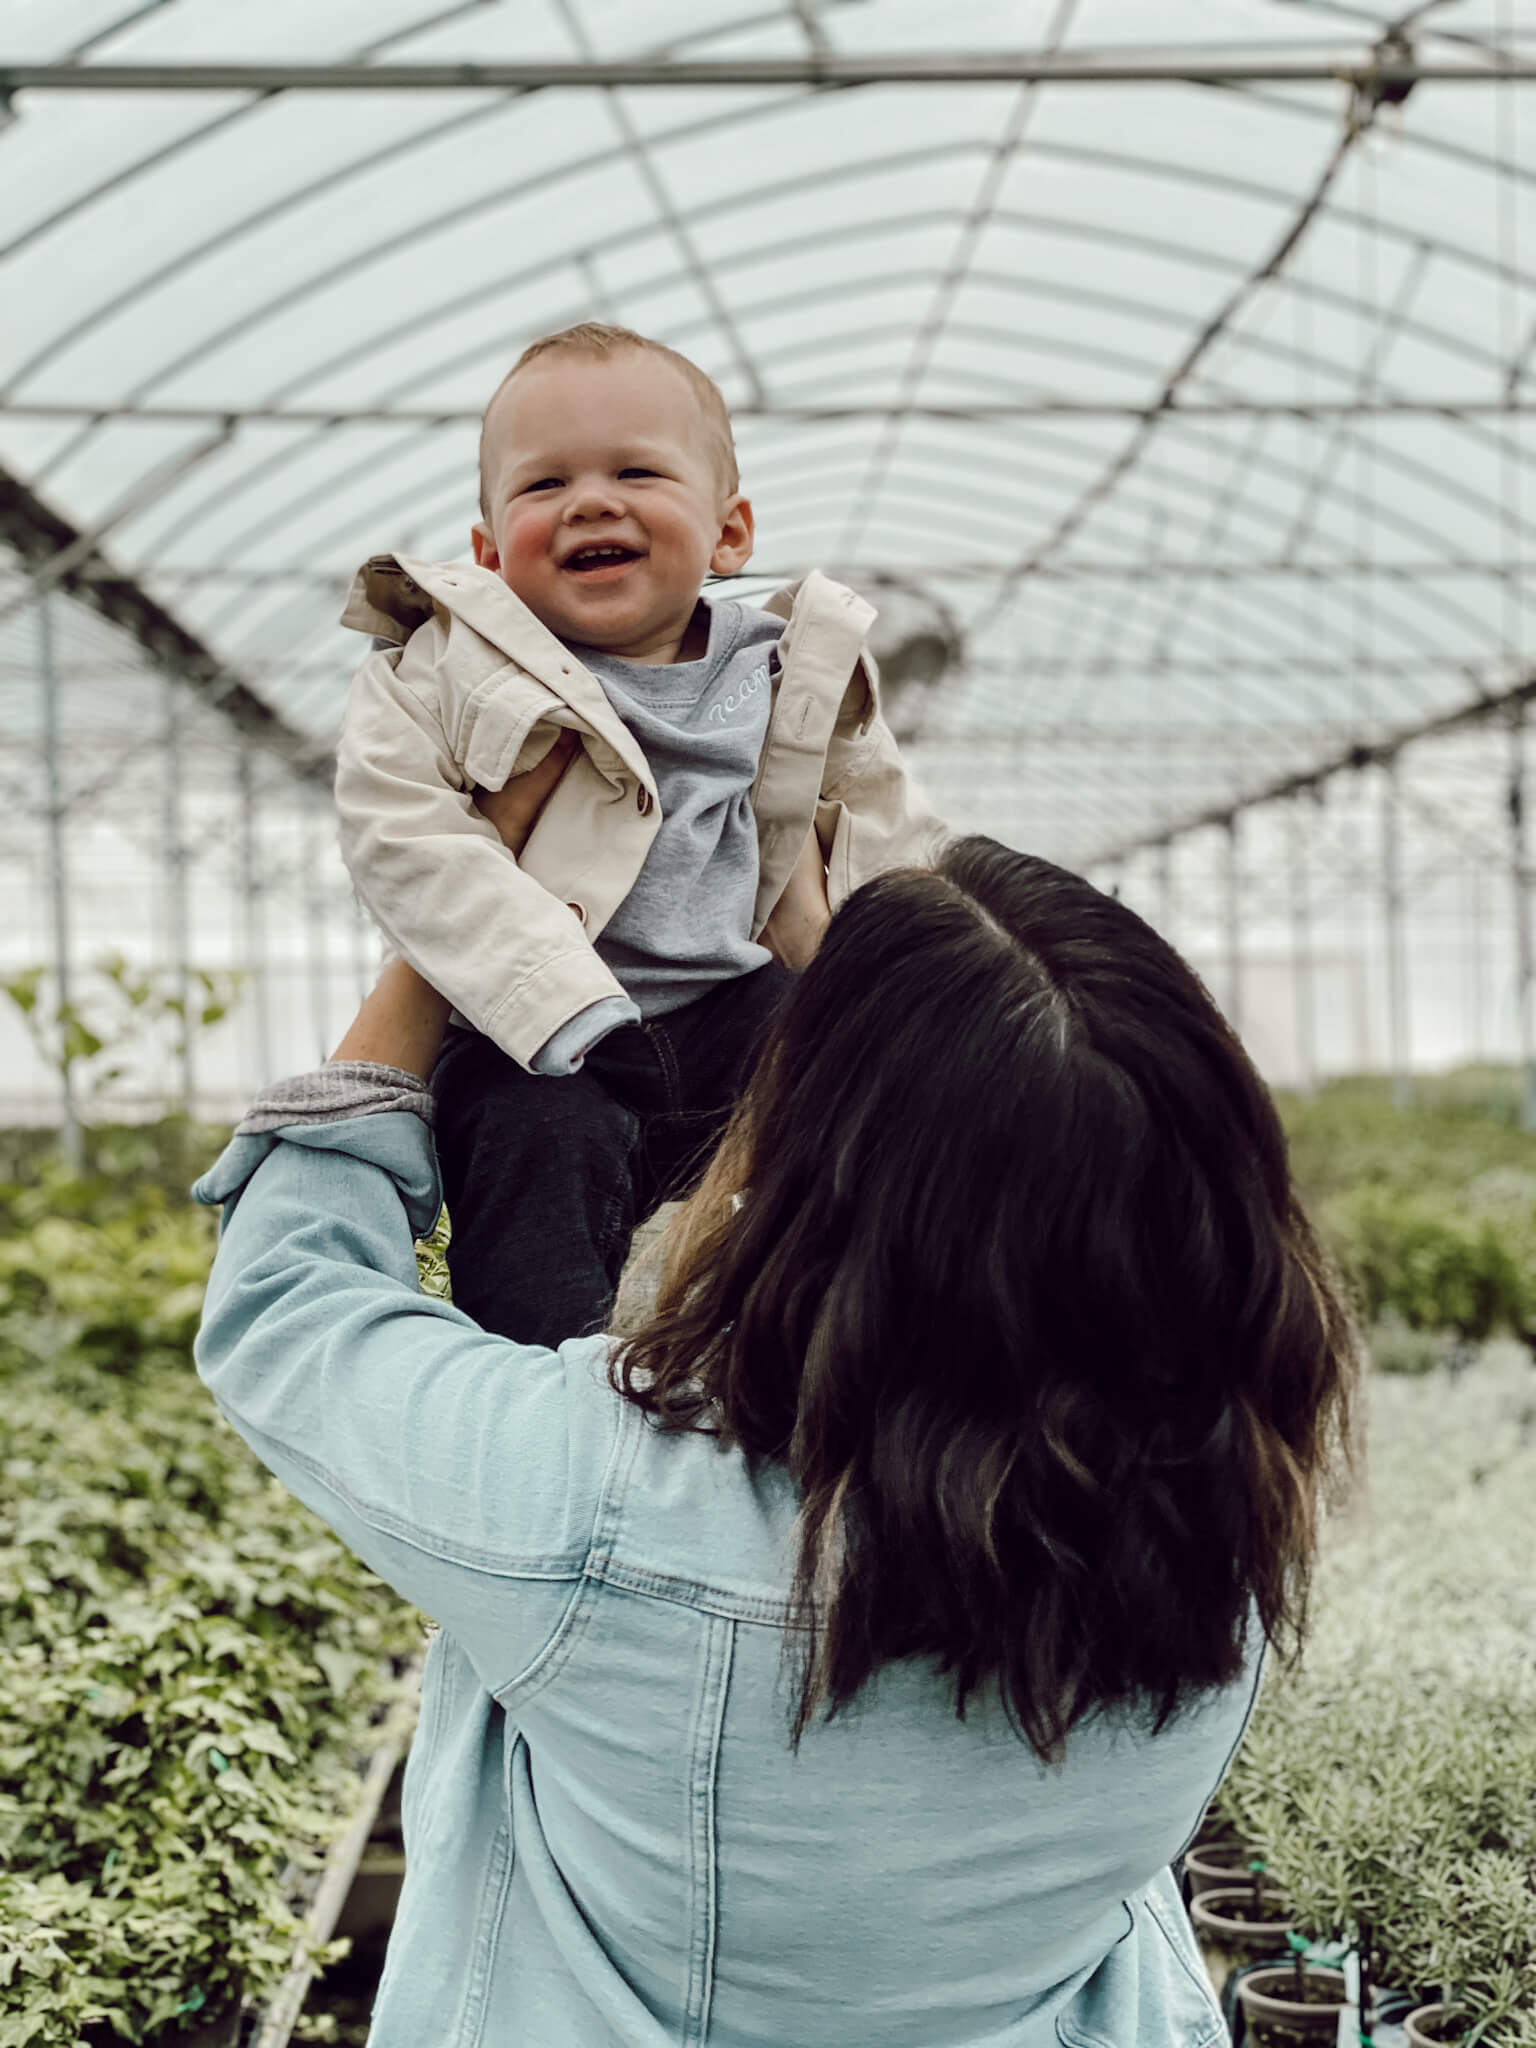 Liz Marie and Cope in a greenhouse